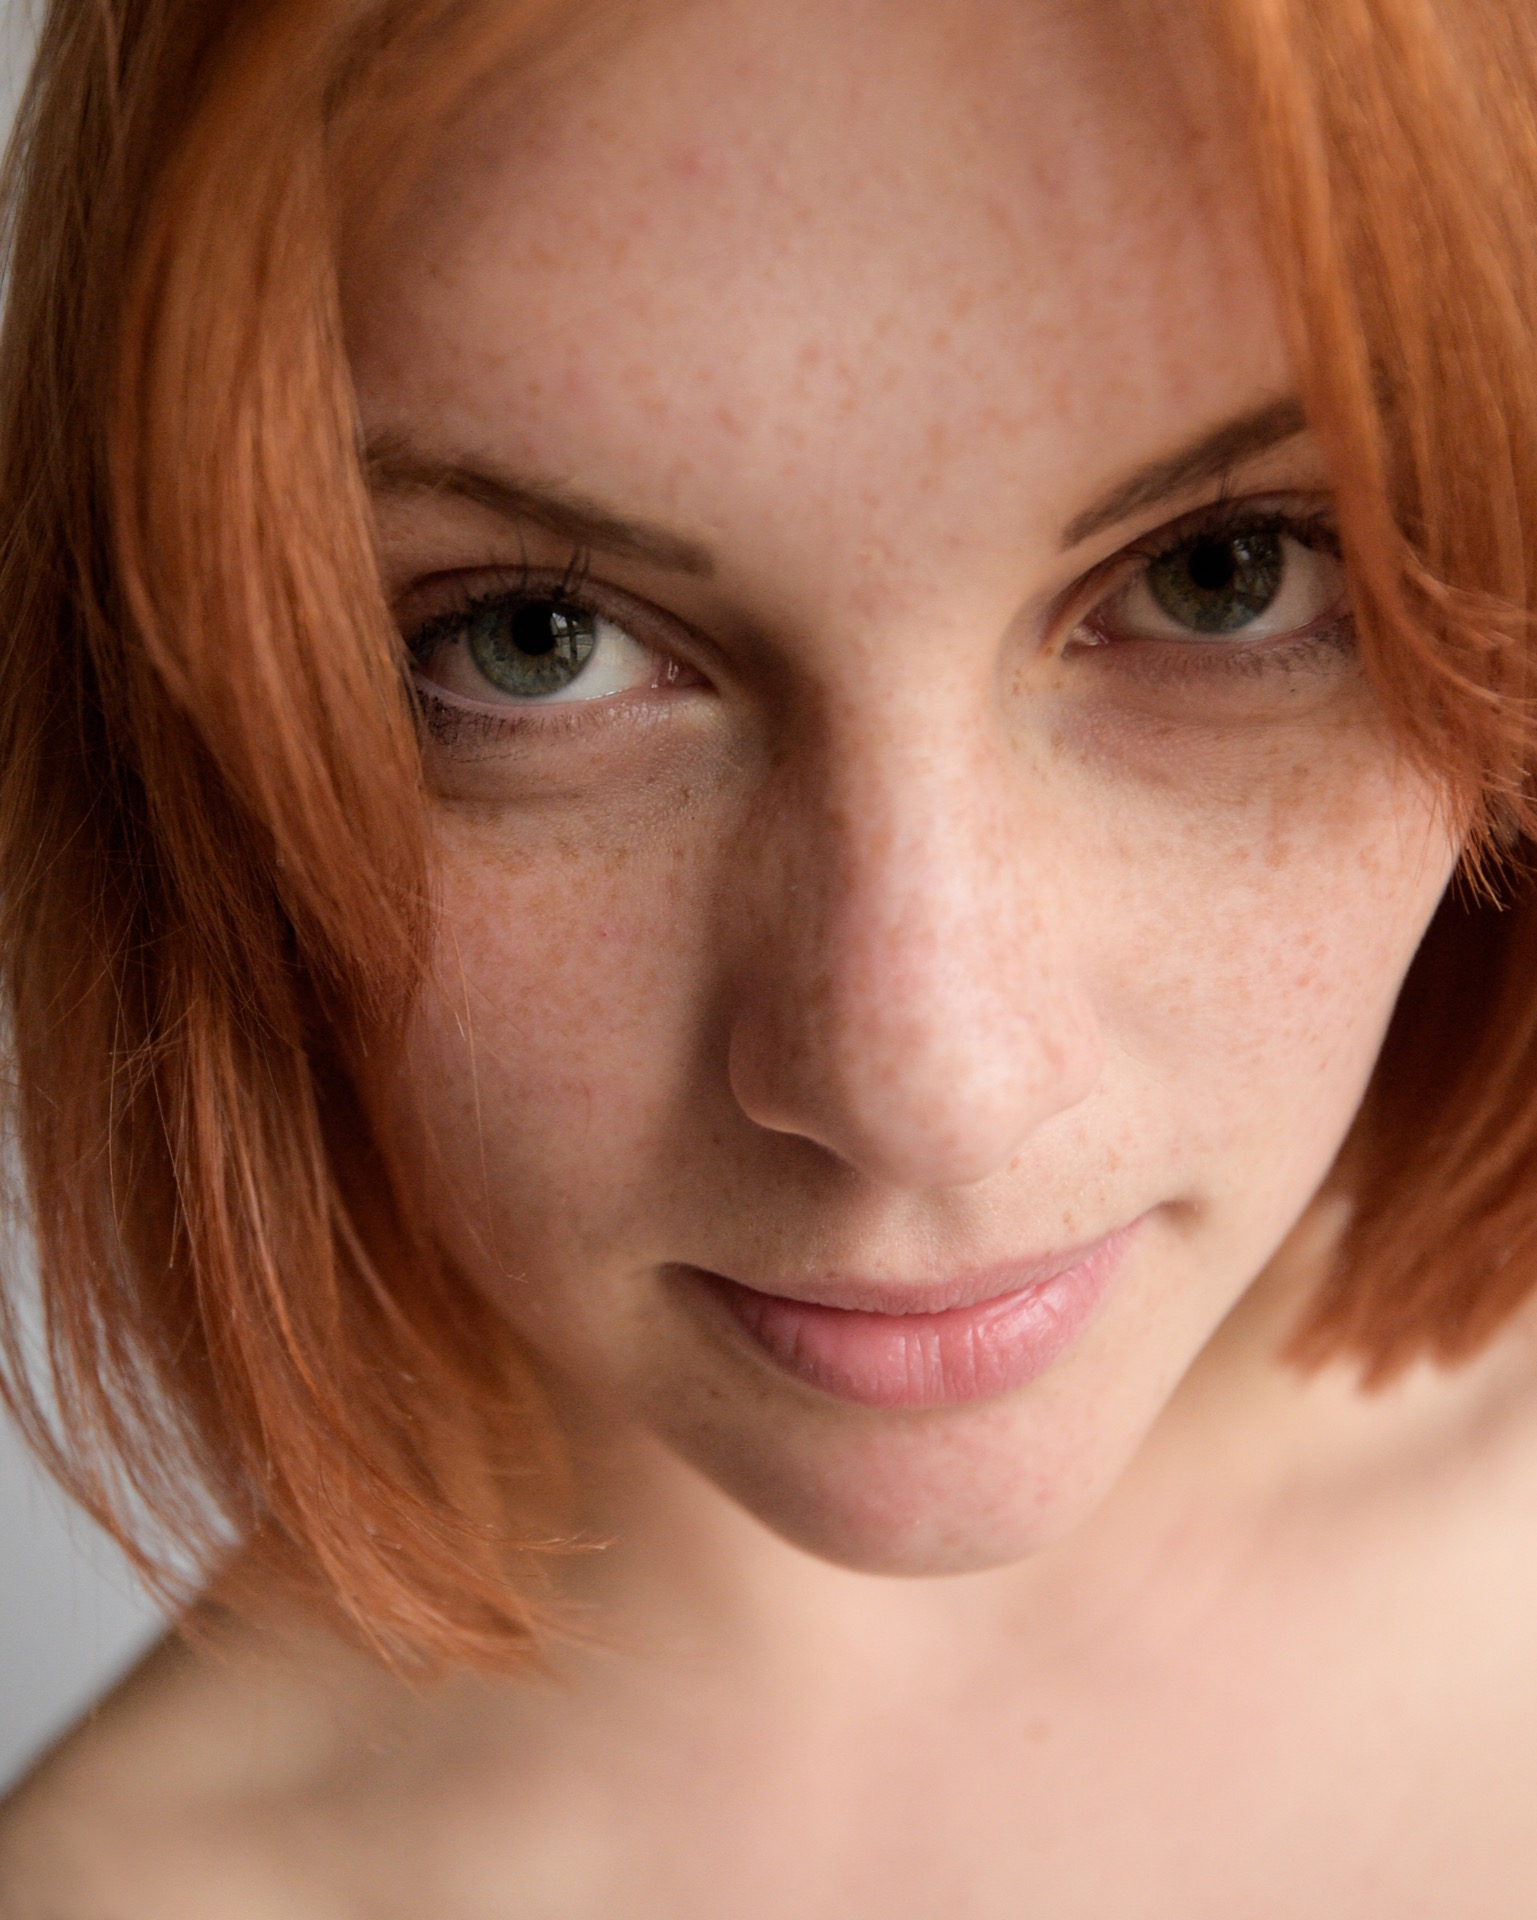 portrait, girl, eyes, lips, natural,  face, freckles, redhair